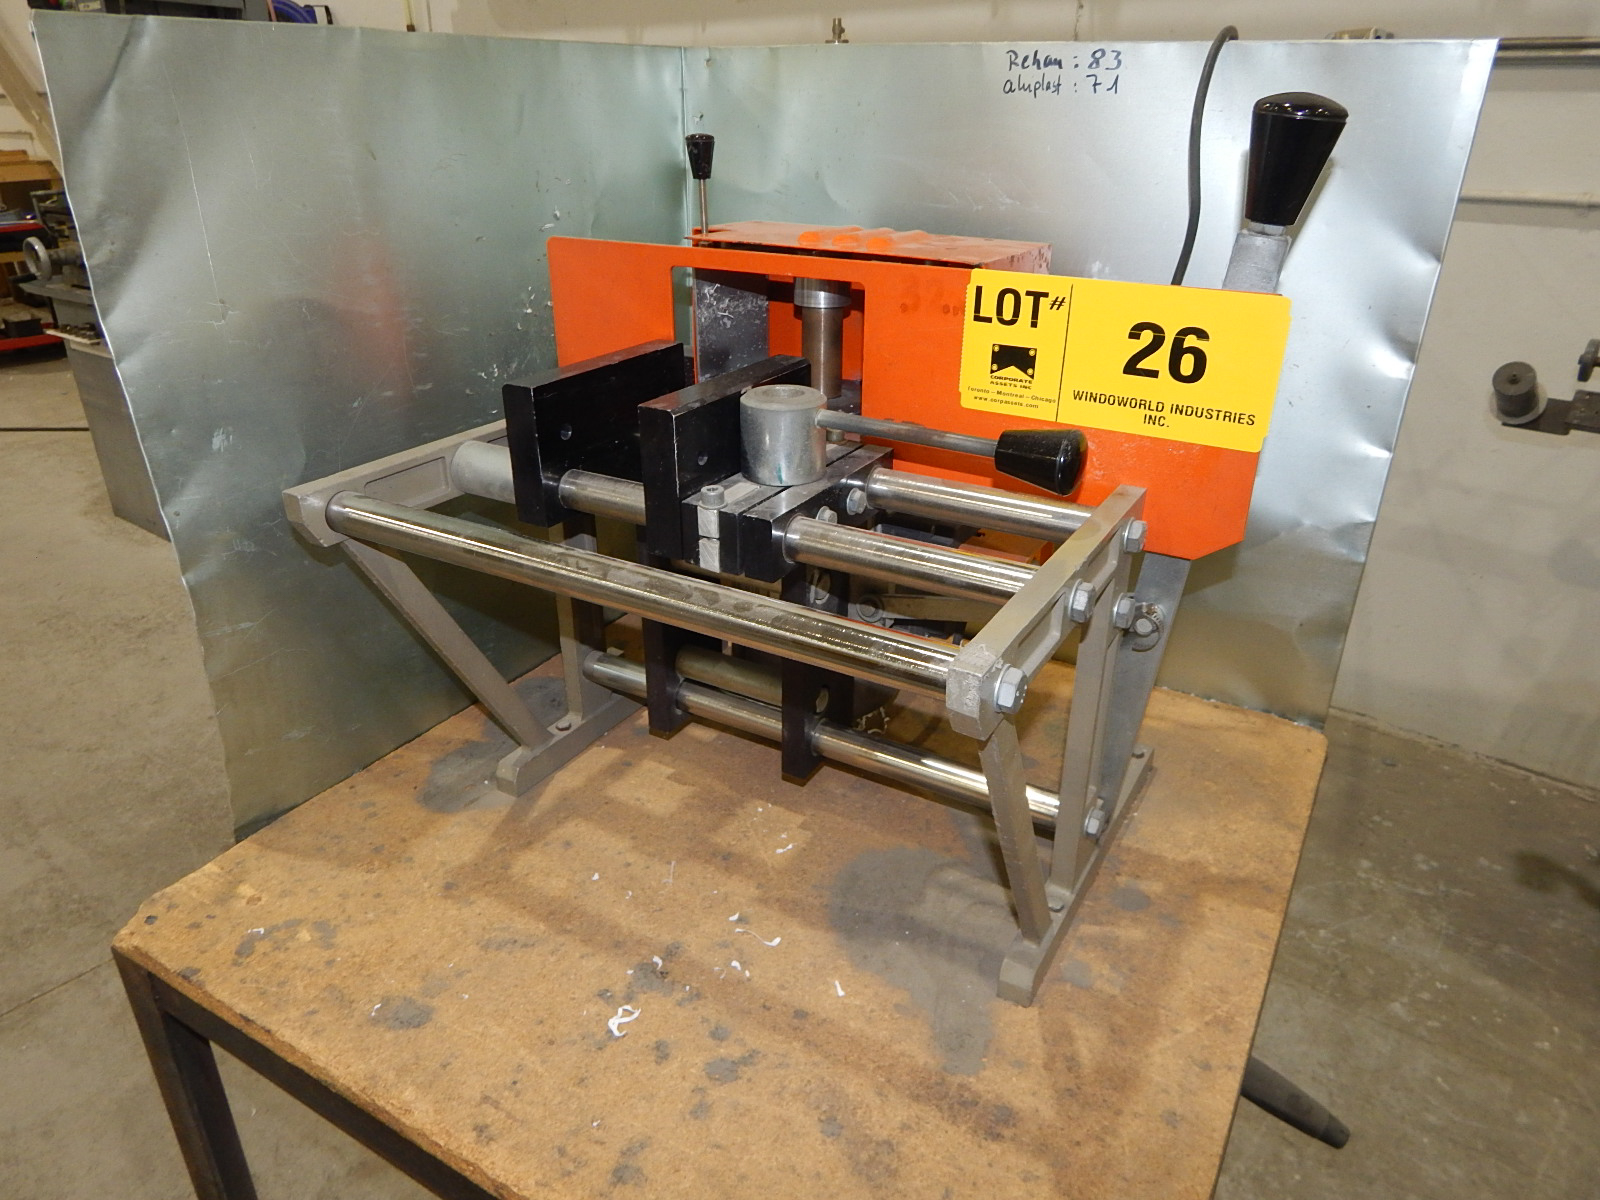 ELUMATEC AF354 END MILLER MACHINE WITH SPEEDS UP TO 2800 RPM S/N: 1088 - Image 4 of 4